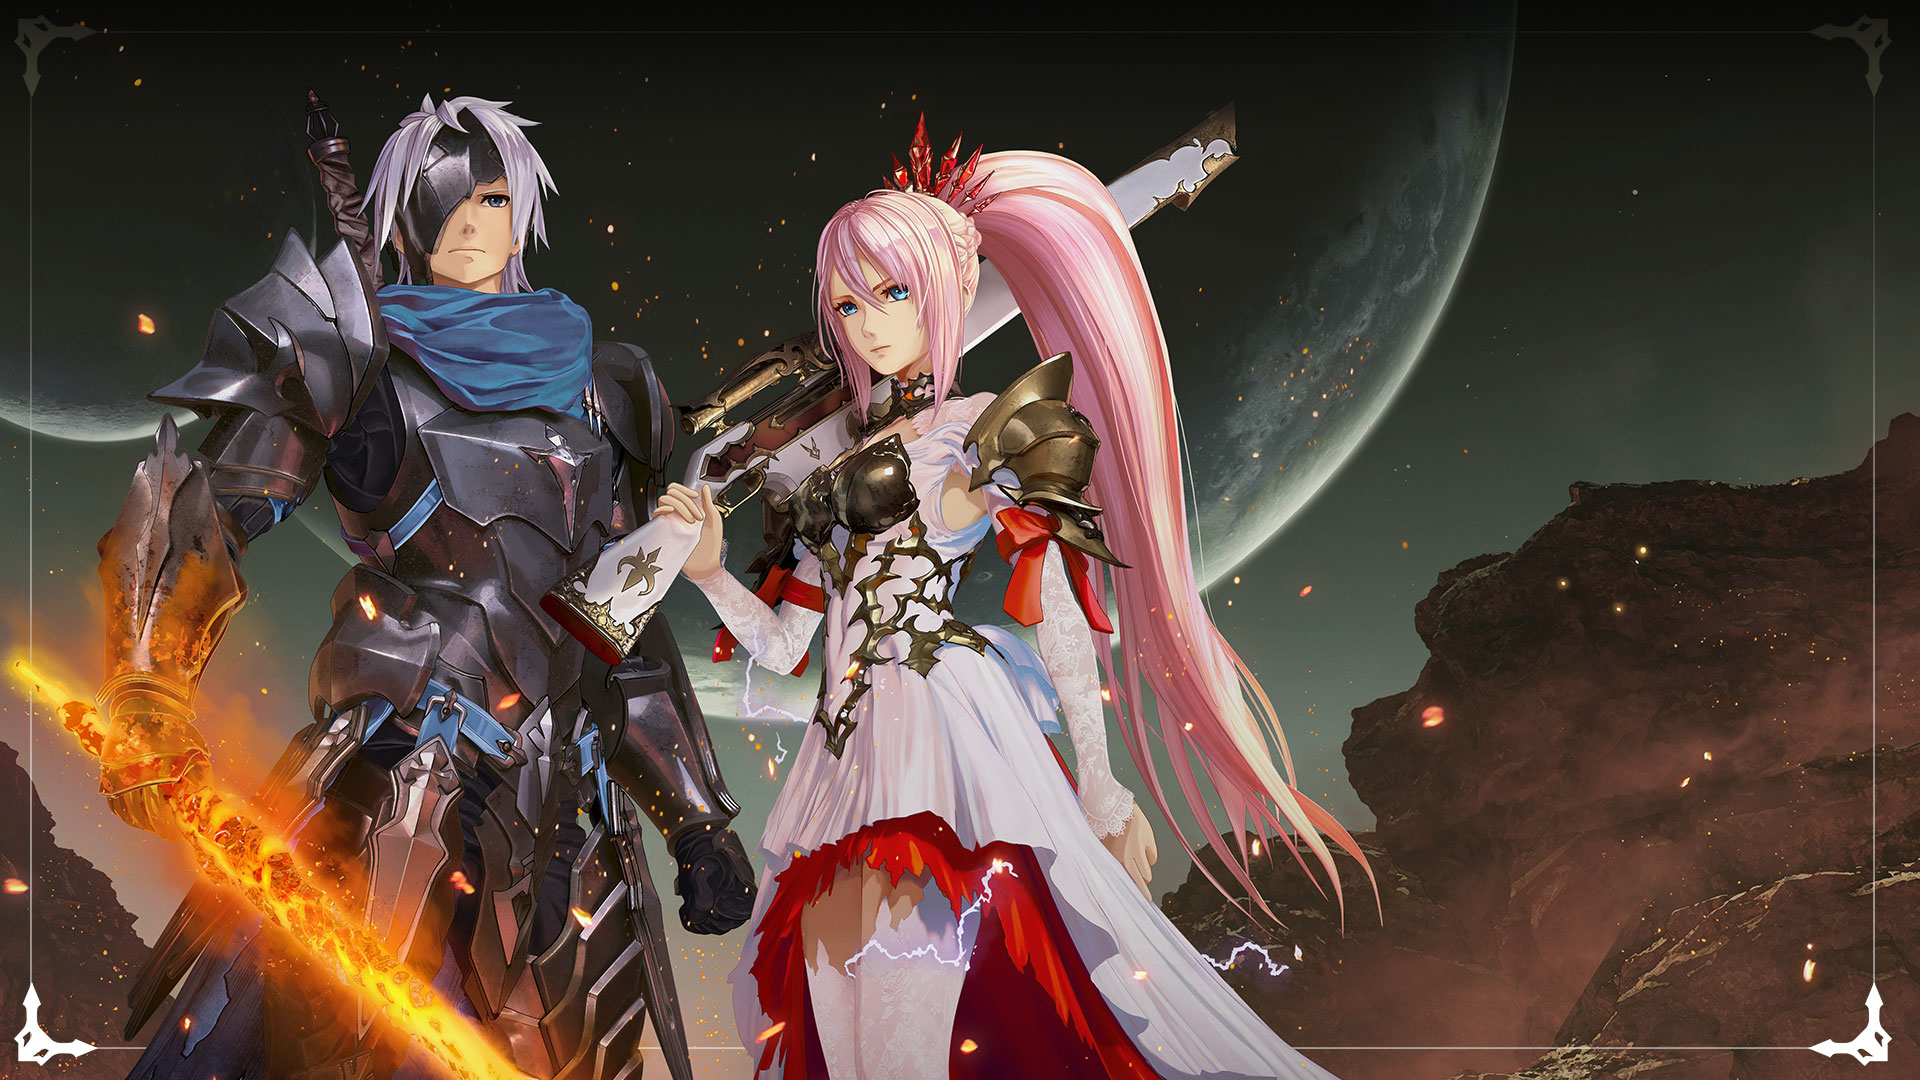 Alphen and Shionne pose with weapons under a full and large moon.